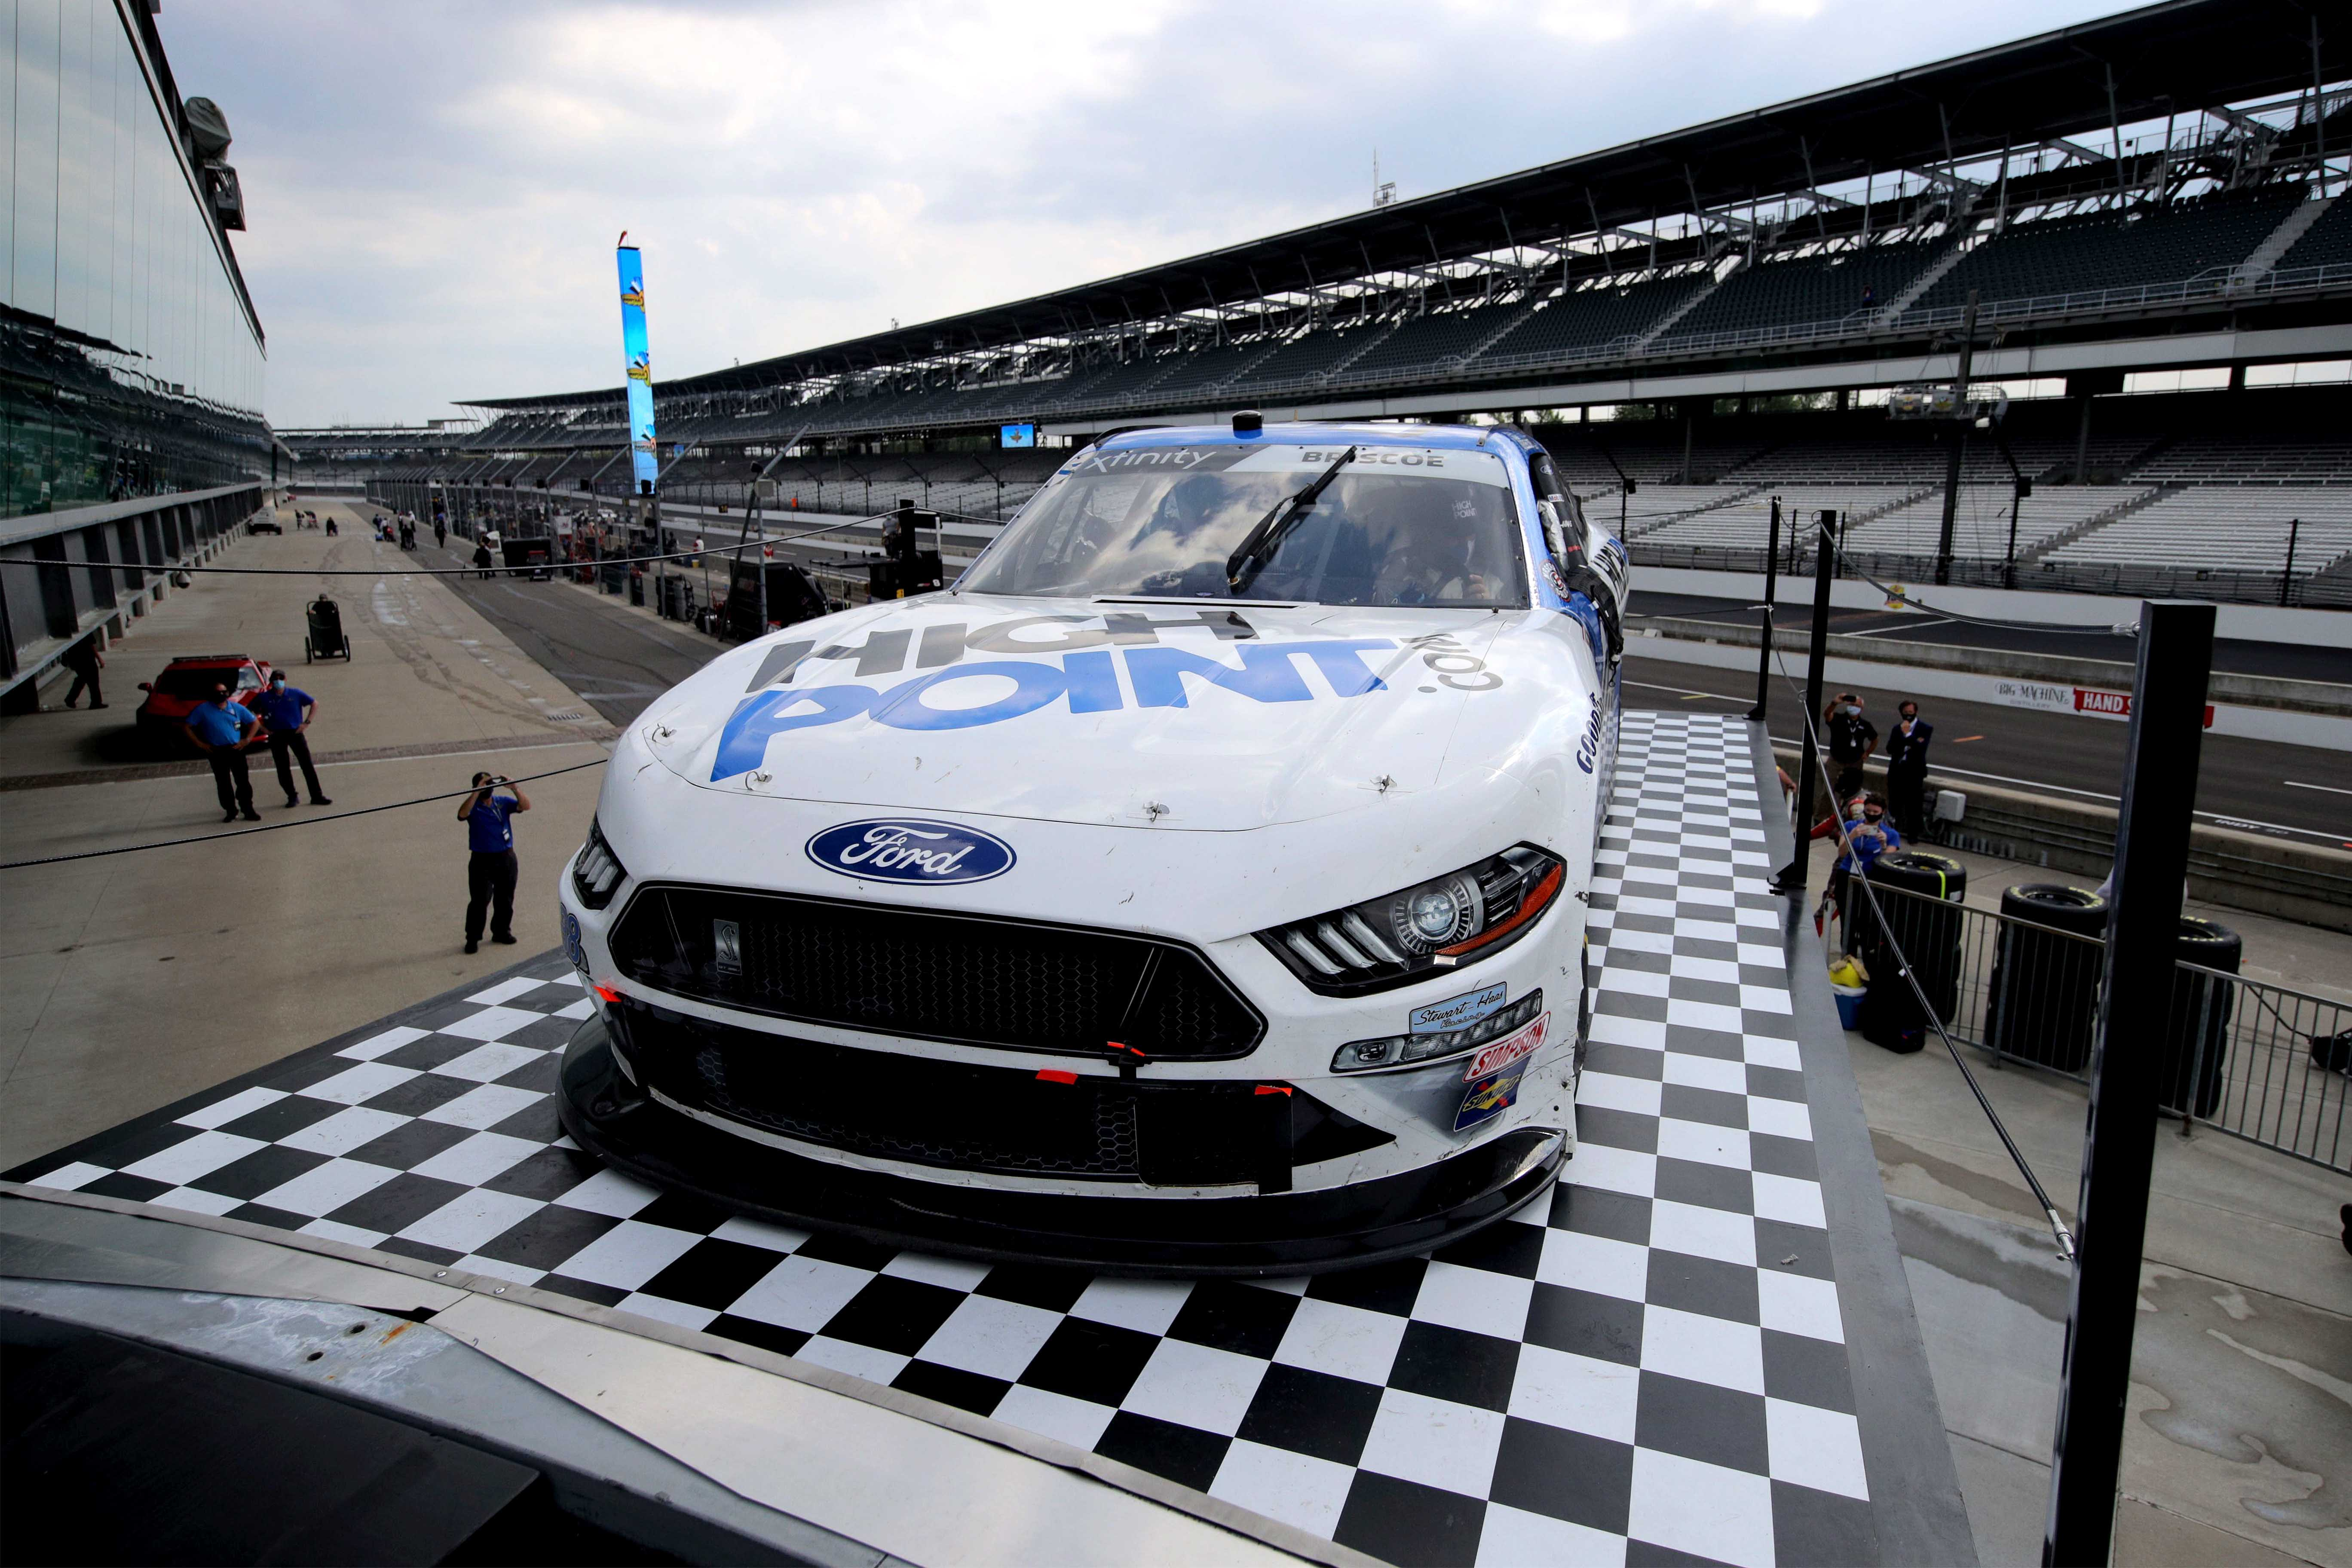 Chase Briscoe in victory lane at Indianapolis Motor Speedway - NASCRA Xfinity Series